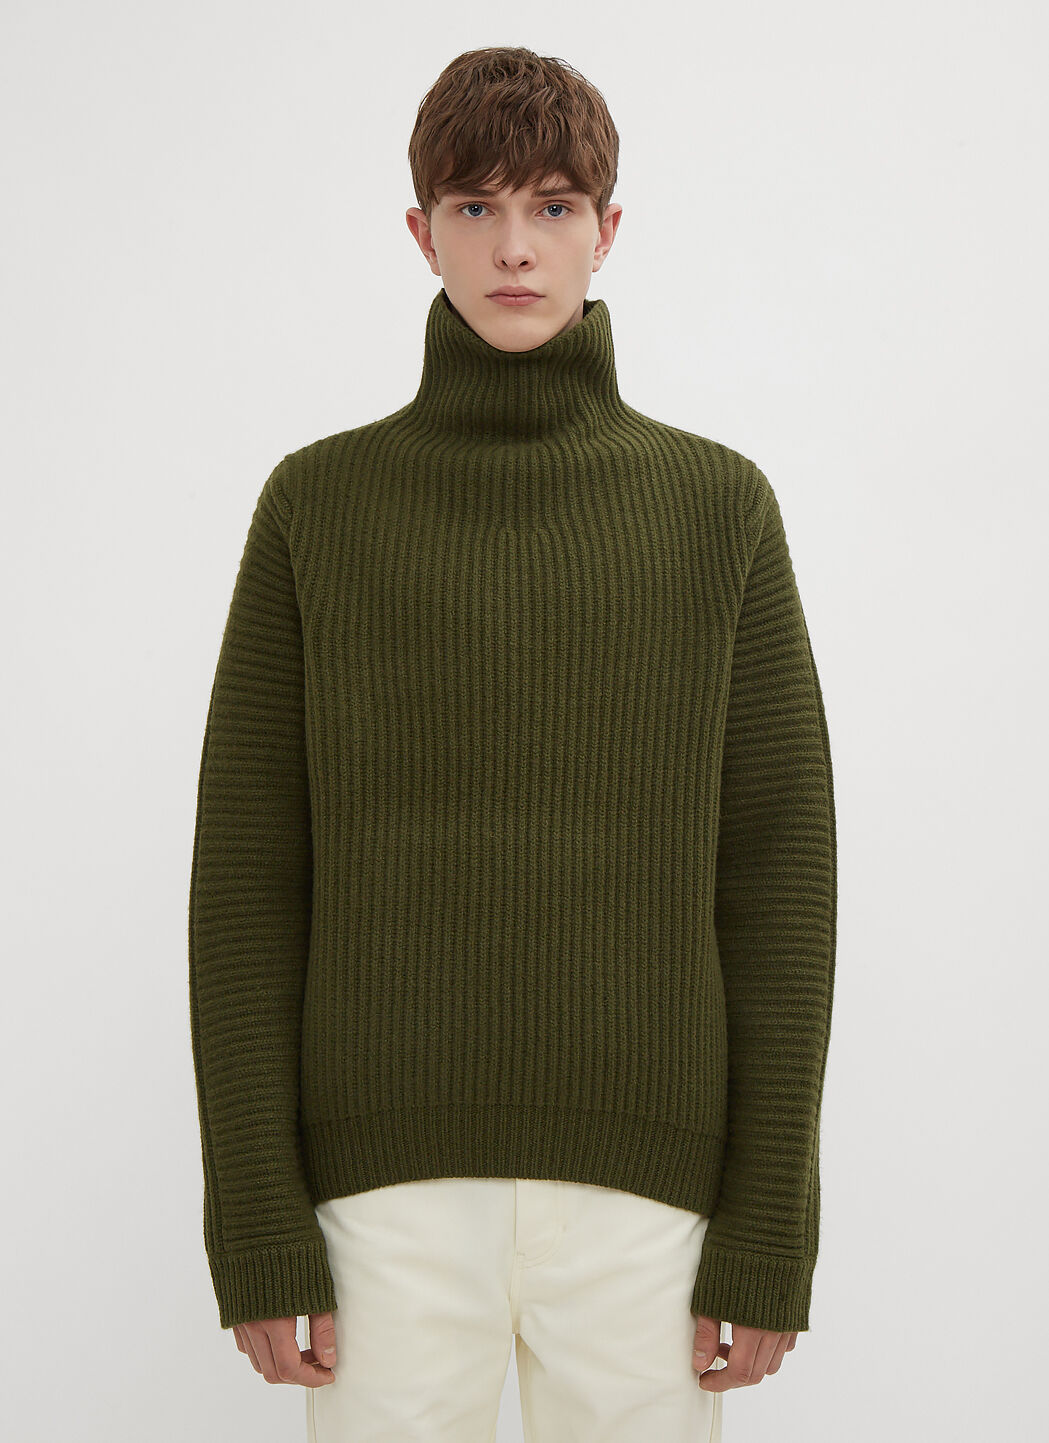 Green In Acne Ribbed Ln Studios Cc Sweater Boxy wP8XFP